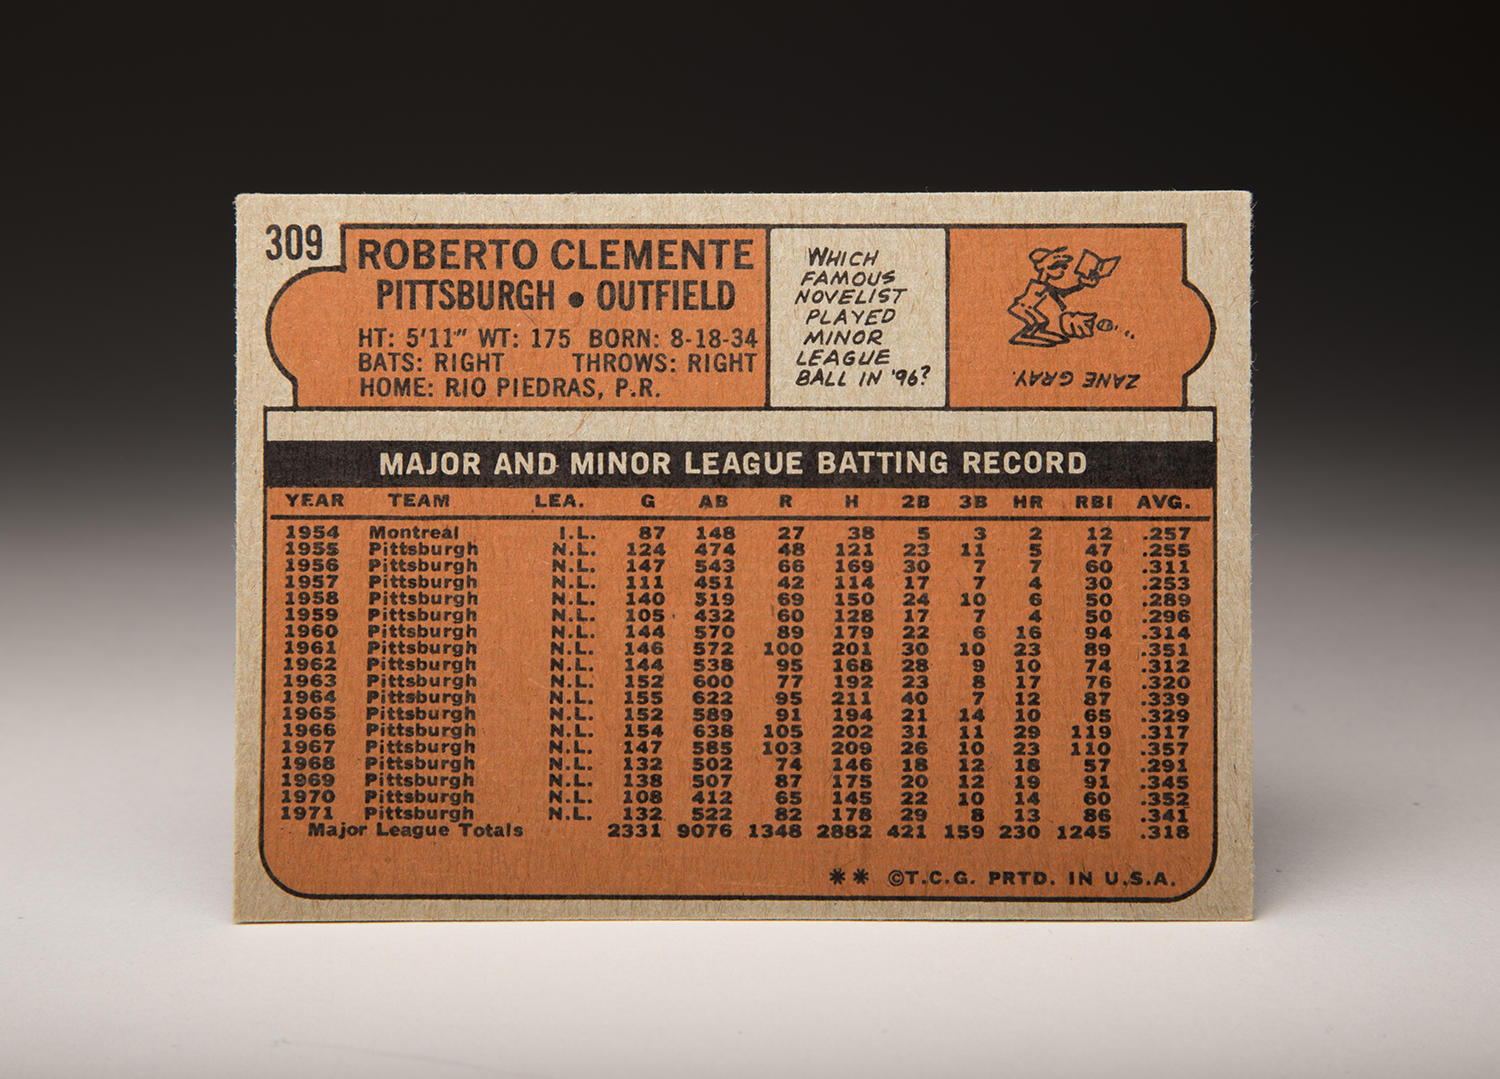 The reverse side of Roberto Clemente's 1972 Topps card. (By Photographer Milo Stewart Jr. / National Baseball Hall of Fame and Museum)